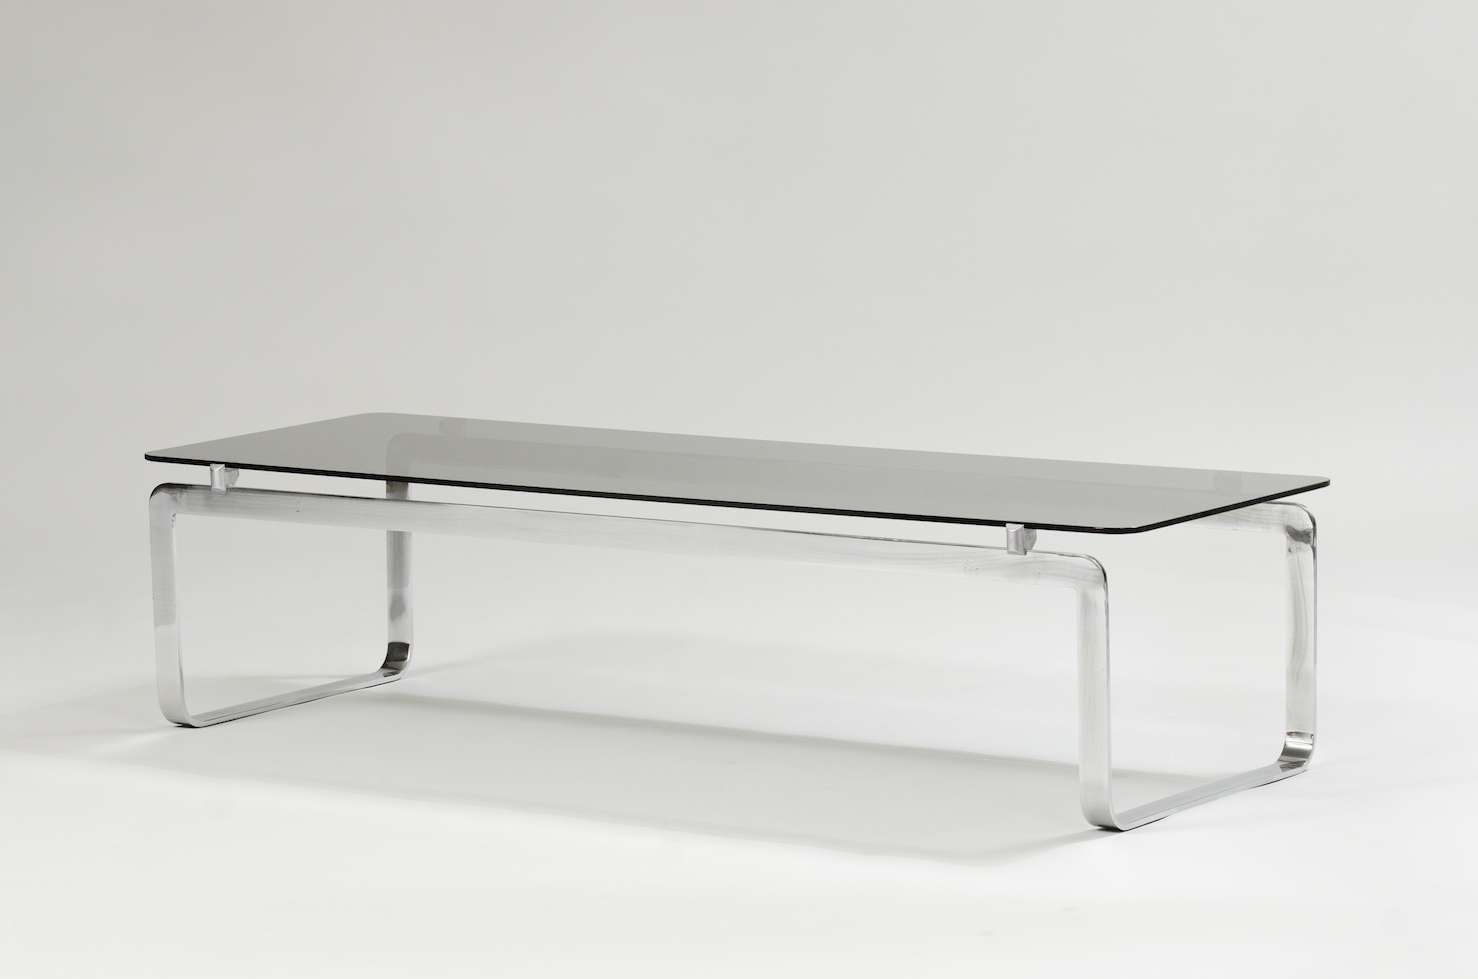 Italian Coffee Table In Chrome And Smoked Glass For Sale At Pamono With Famous Italian Coffee Tables (View 20 of 20)